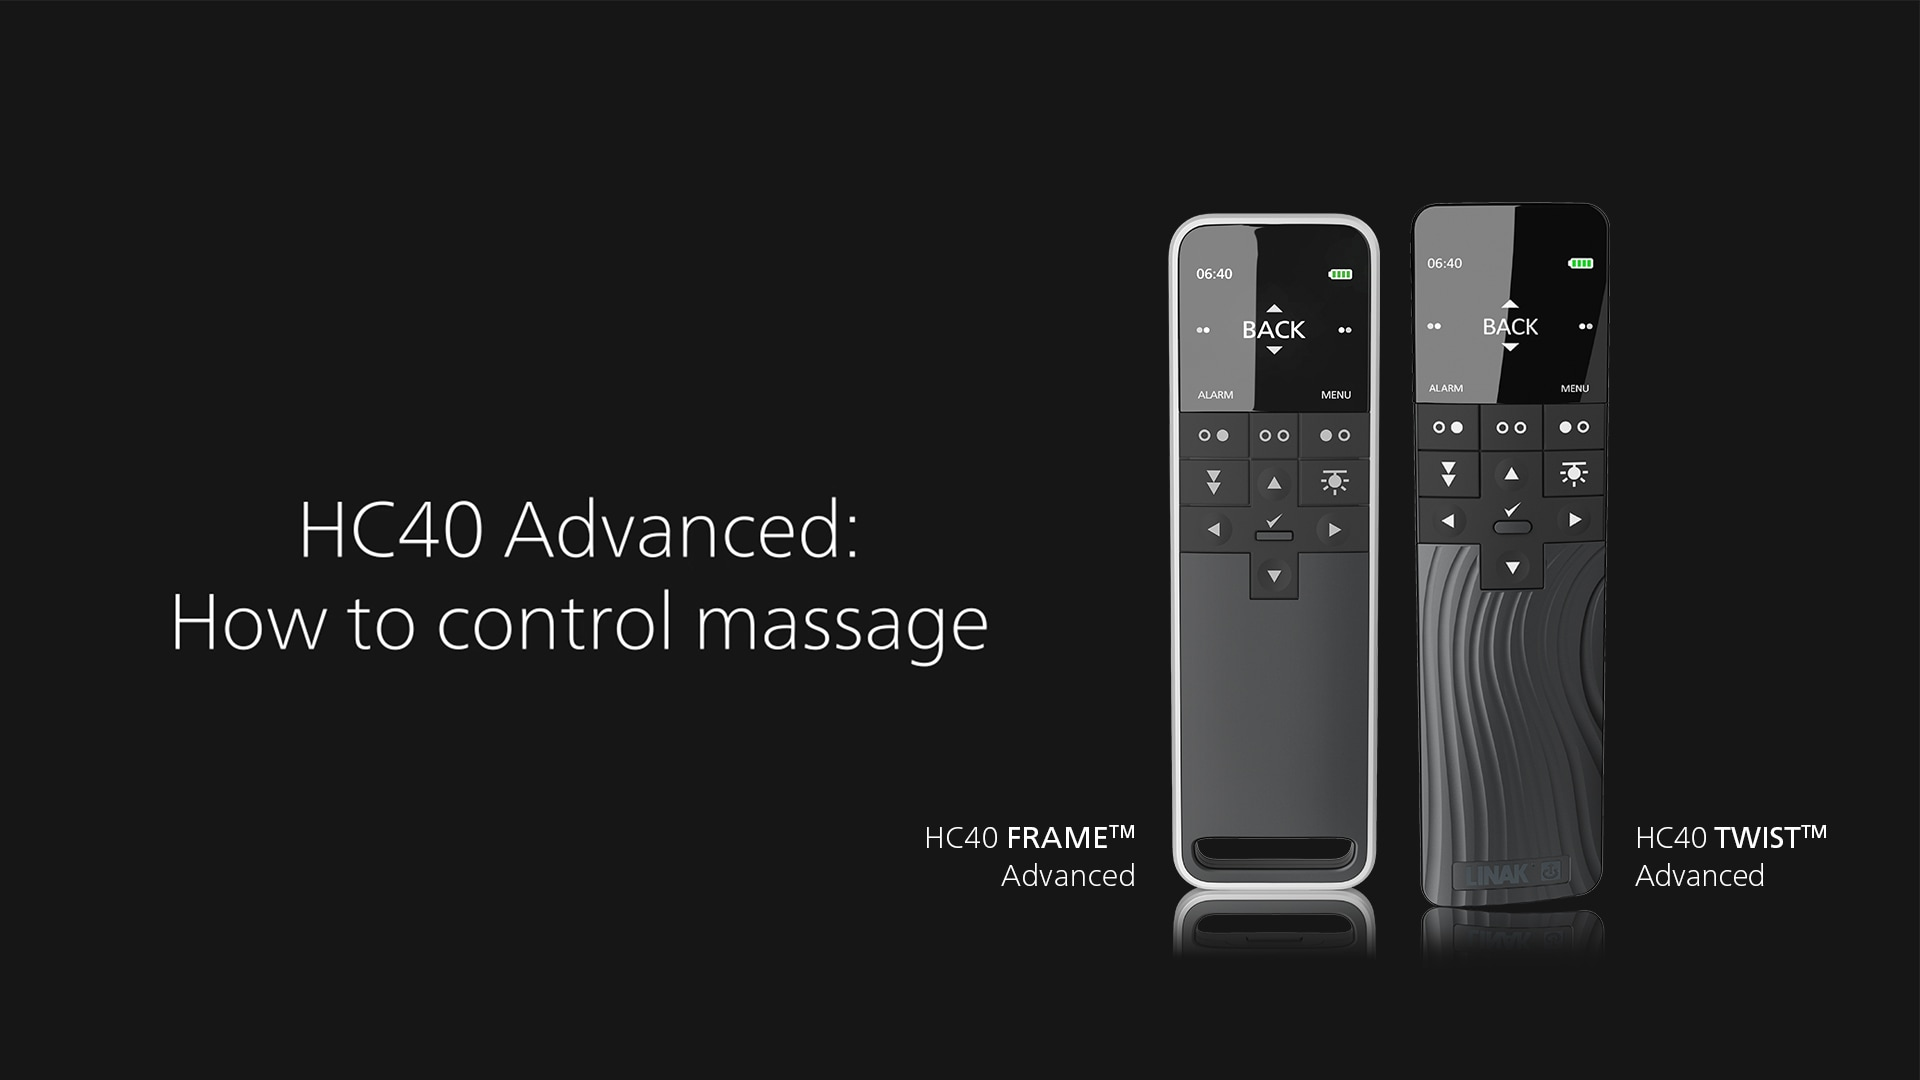 HC40 Advanced: How to control massage